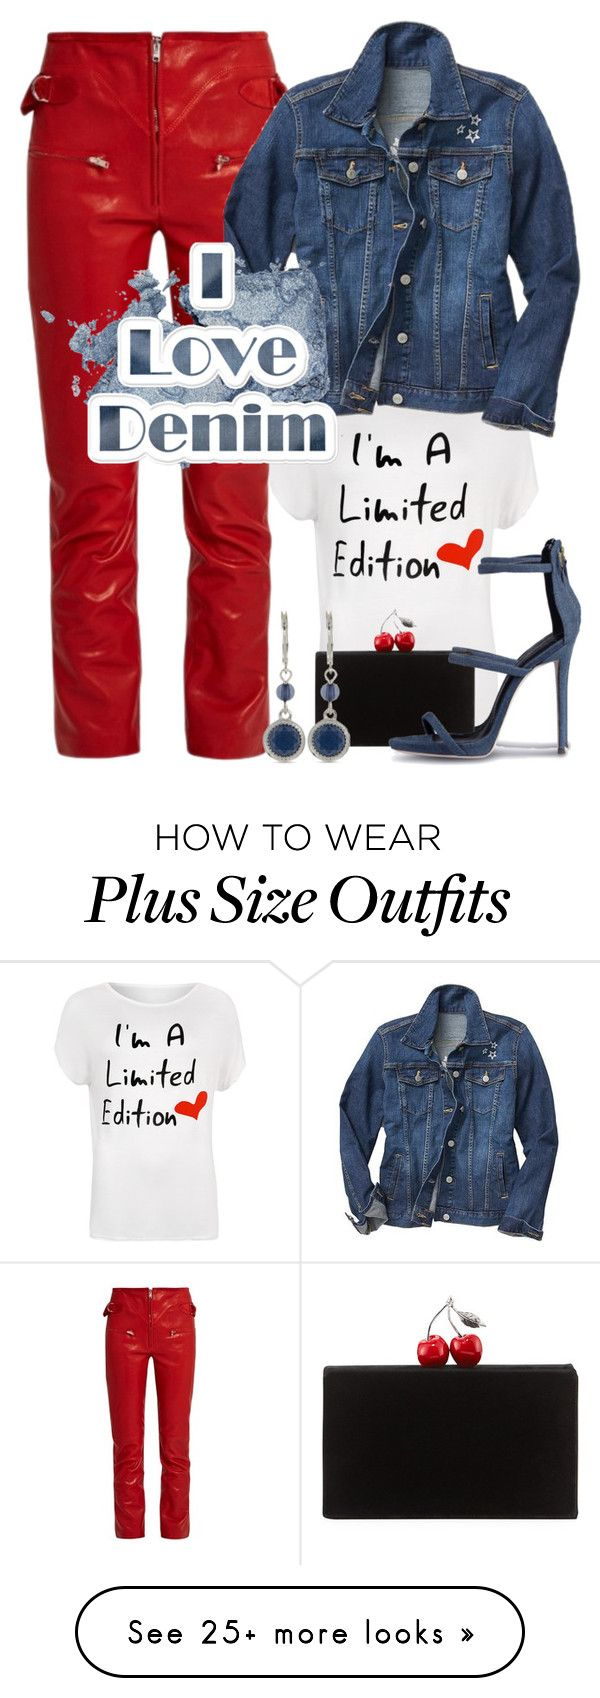 """Limited Edition"" by majezy on Polyvore featuring WearAll, Isabel Marant, Giuseppe Zanotti, Gap, Edie Parker, Nine West and plus size clothing"